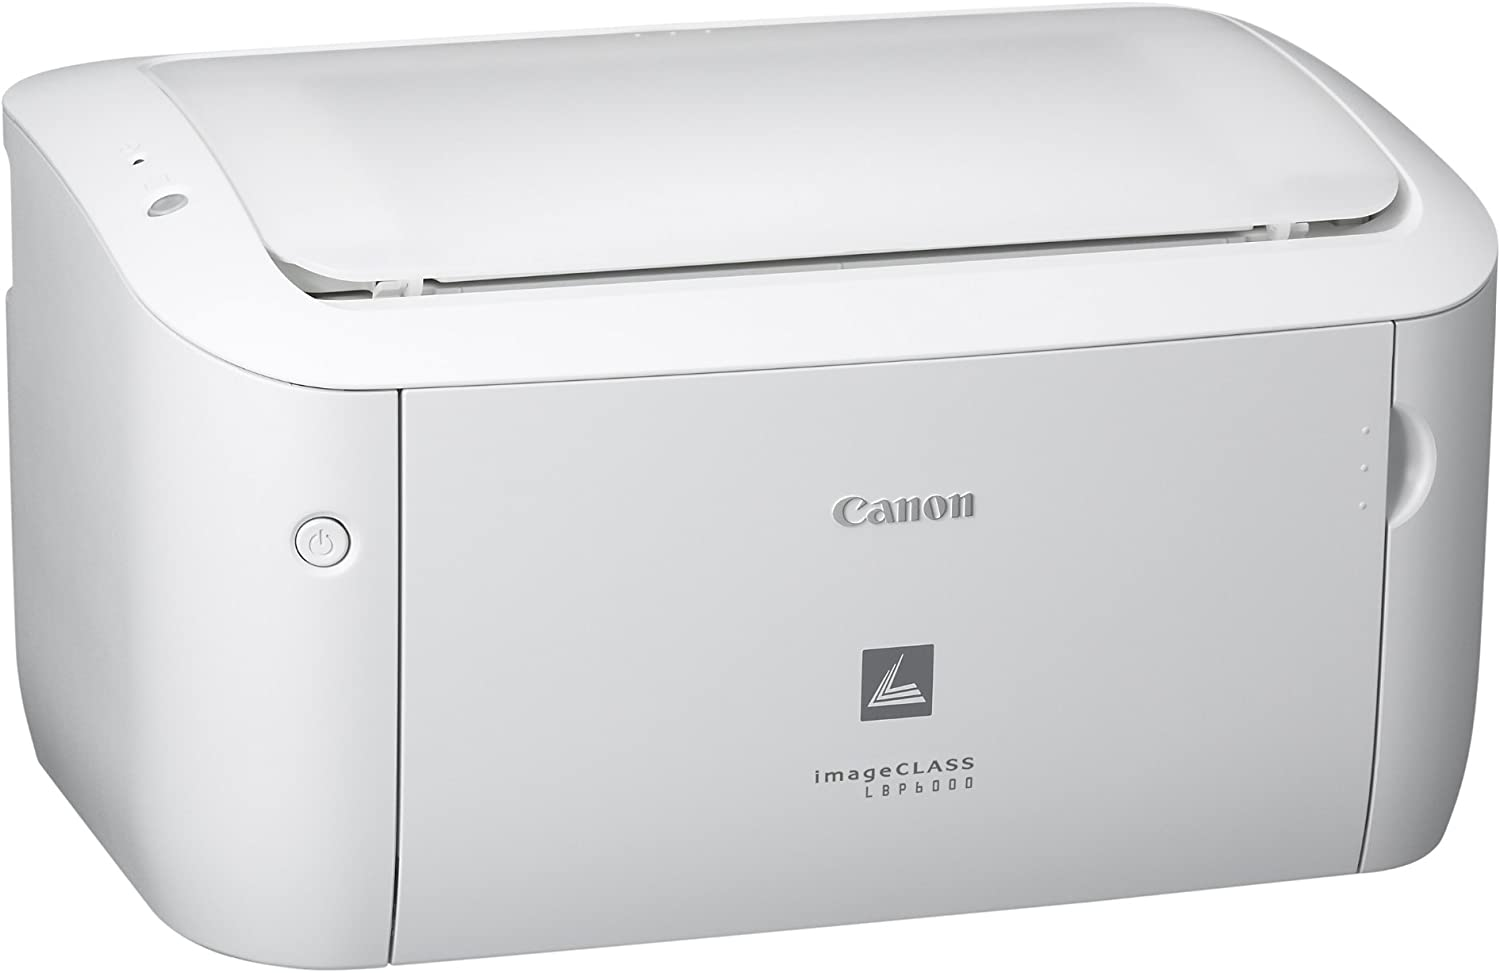 Canon imageCLASS LBP6000 Compact Laser Printer (Discontinued by Manufacturer)